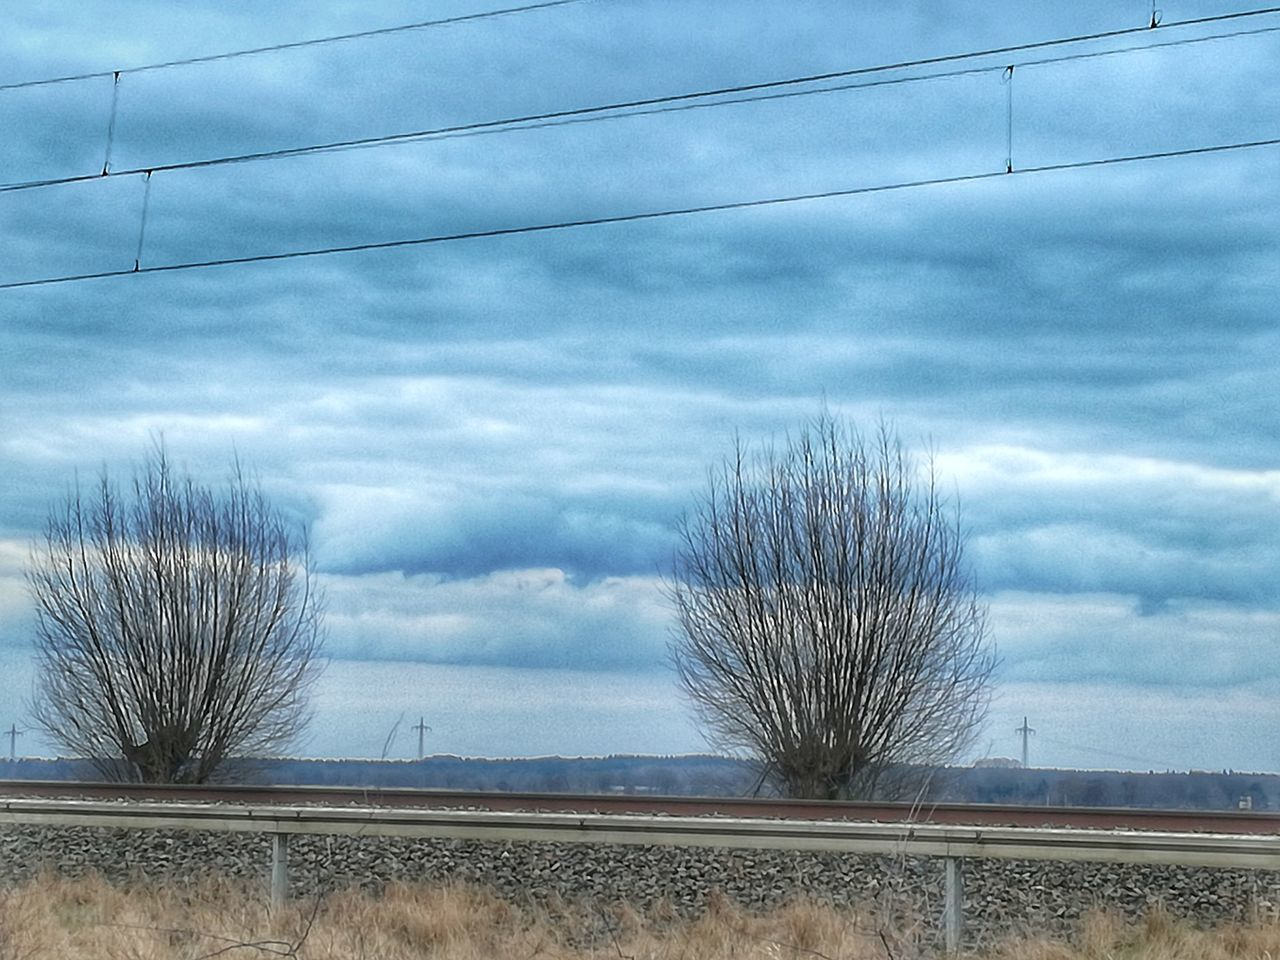 cloud - sky, sky, day, outdoors, bare tree, no people, nature, beauty in nature, tree